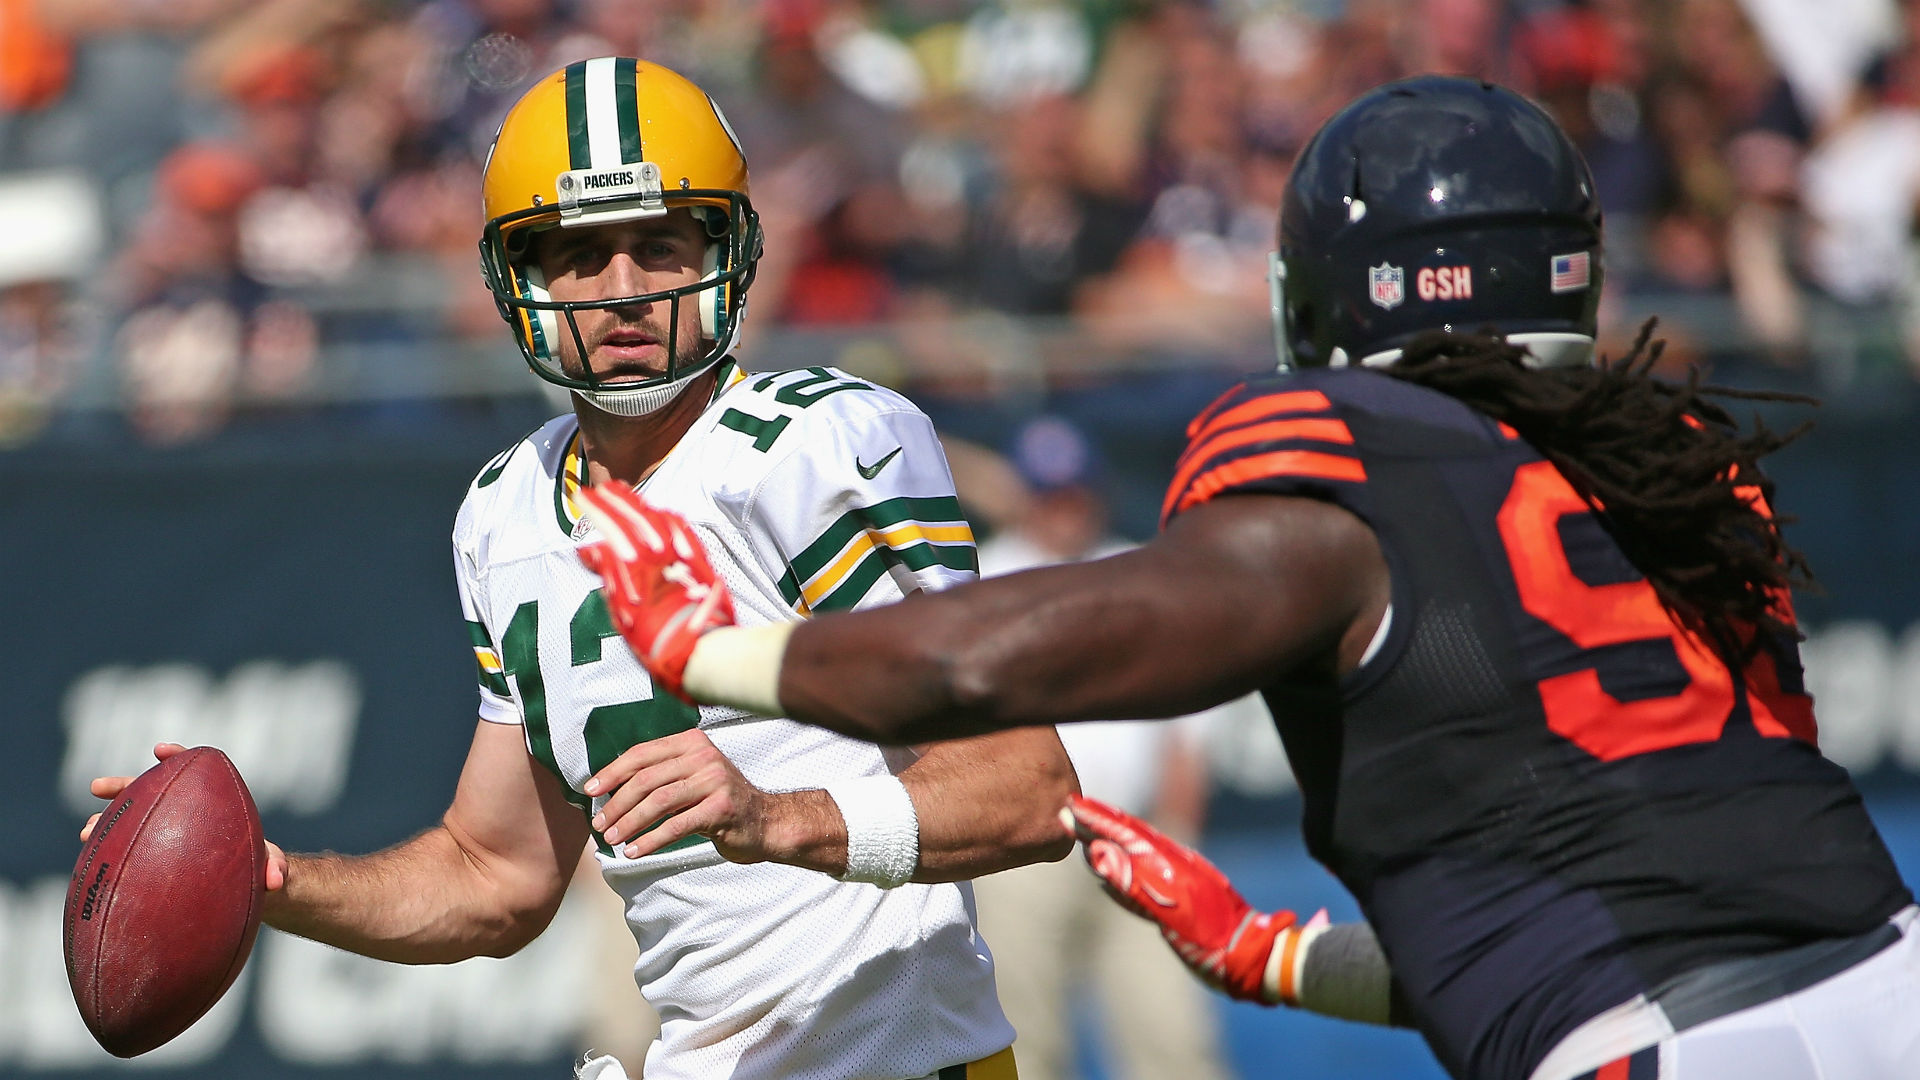 Bears vs. Packers odds, props and picks – Searching for value on Thanksgiving night